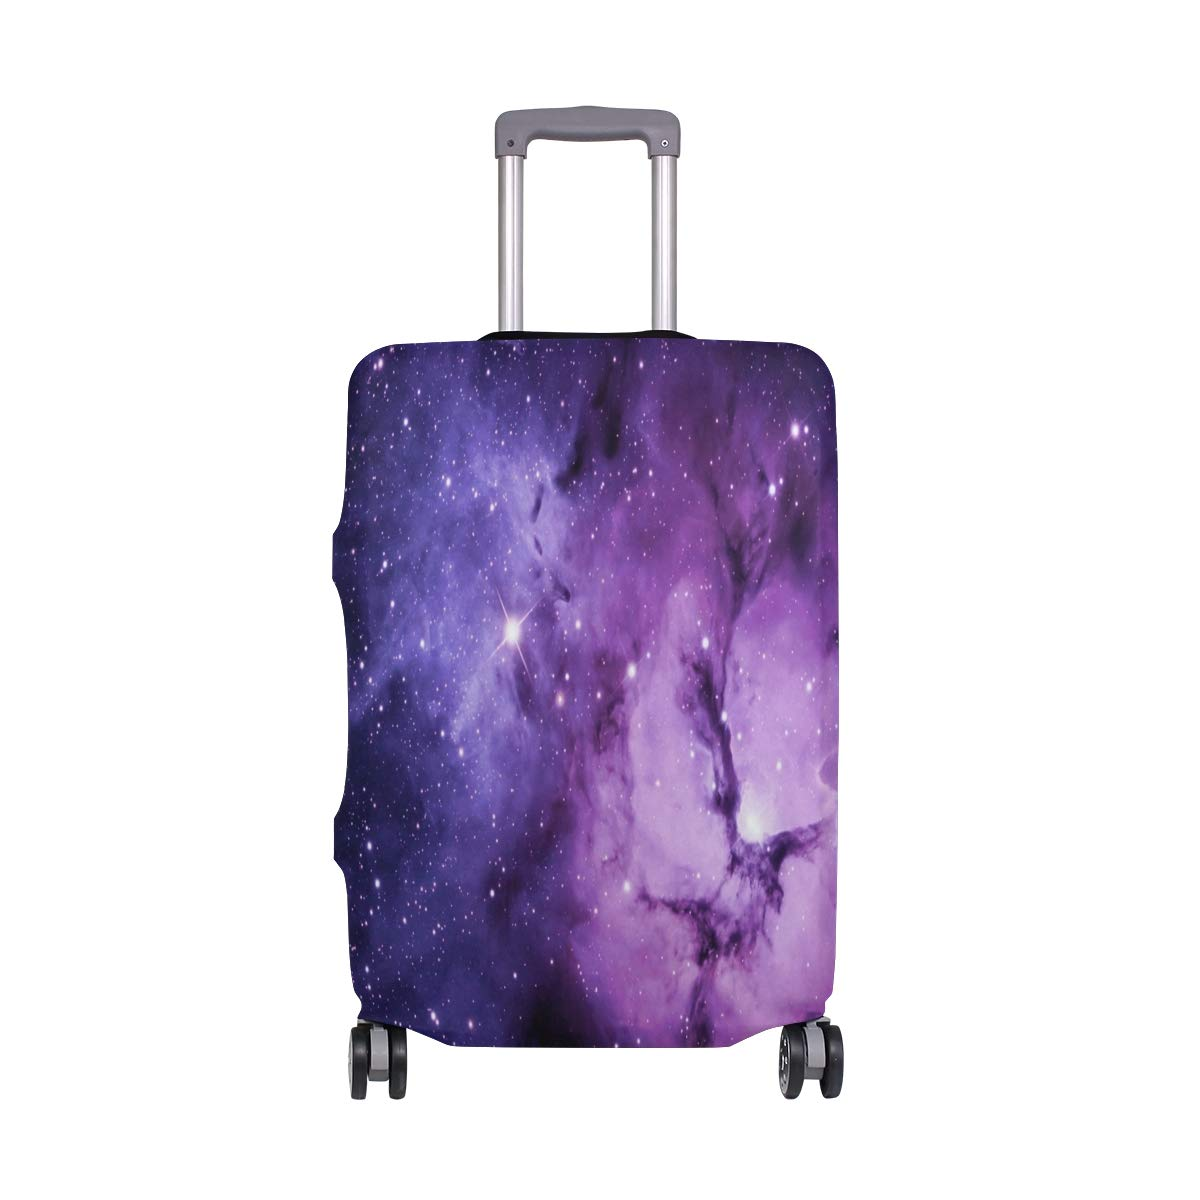 Travel Luggage Cover Outer Space Purple Protective Elastic Suitcase Protector Washable Baggage Covers 29-32IN by ZHOUSUN